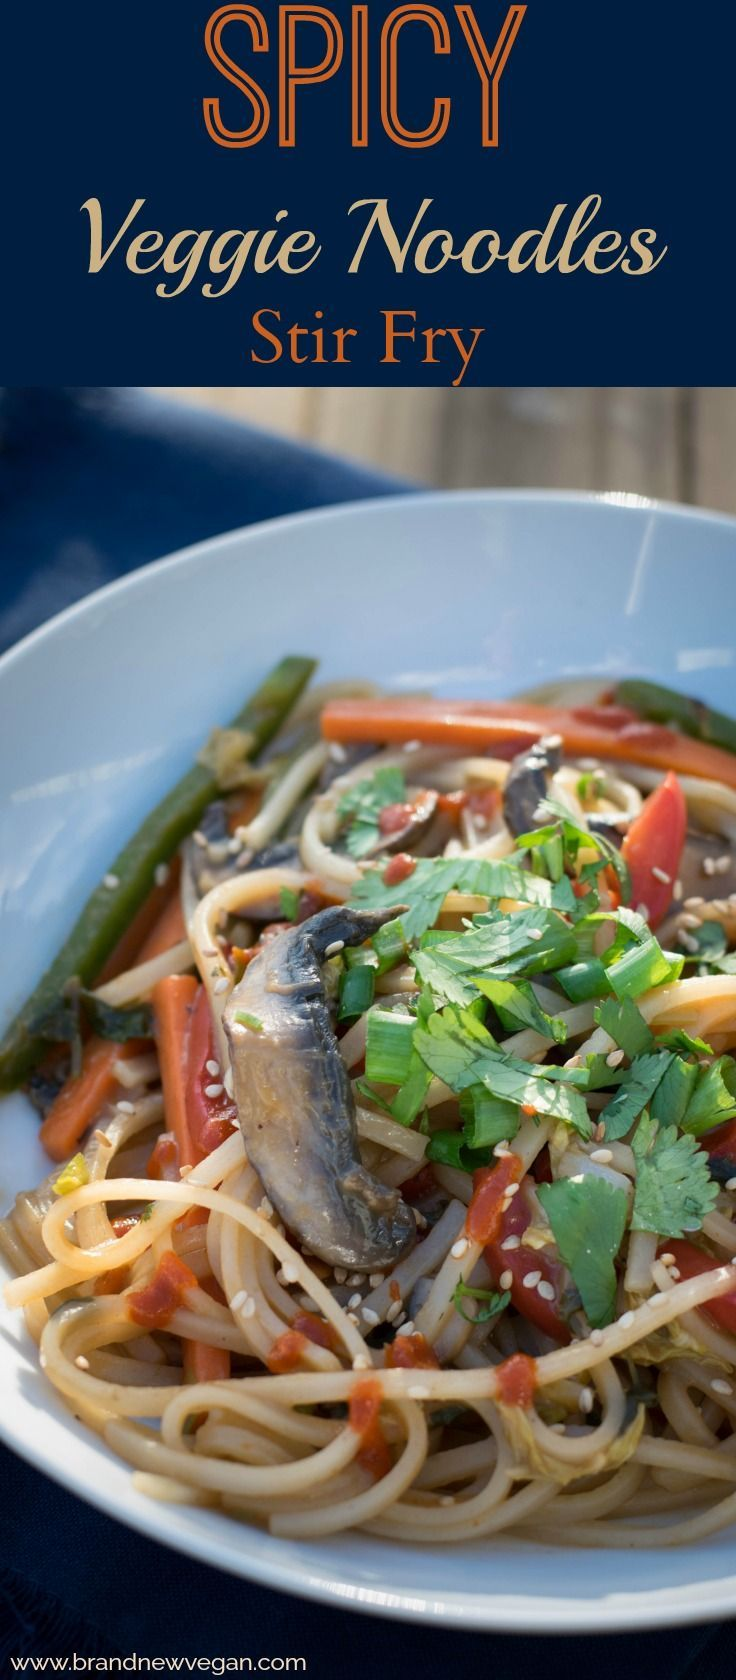 This week'srecipe: a Spicy Veggie Noodles Stir Fry!  Alright, they're not THAT spicy, but they are good and absolutely loaded with super healthy veggies and chewy rice noodles.   Who says Stir-Frys have to be oily or dull? via @brandnewvegan